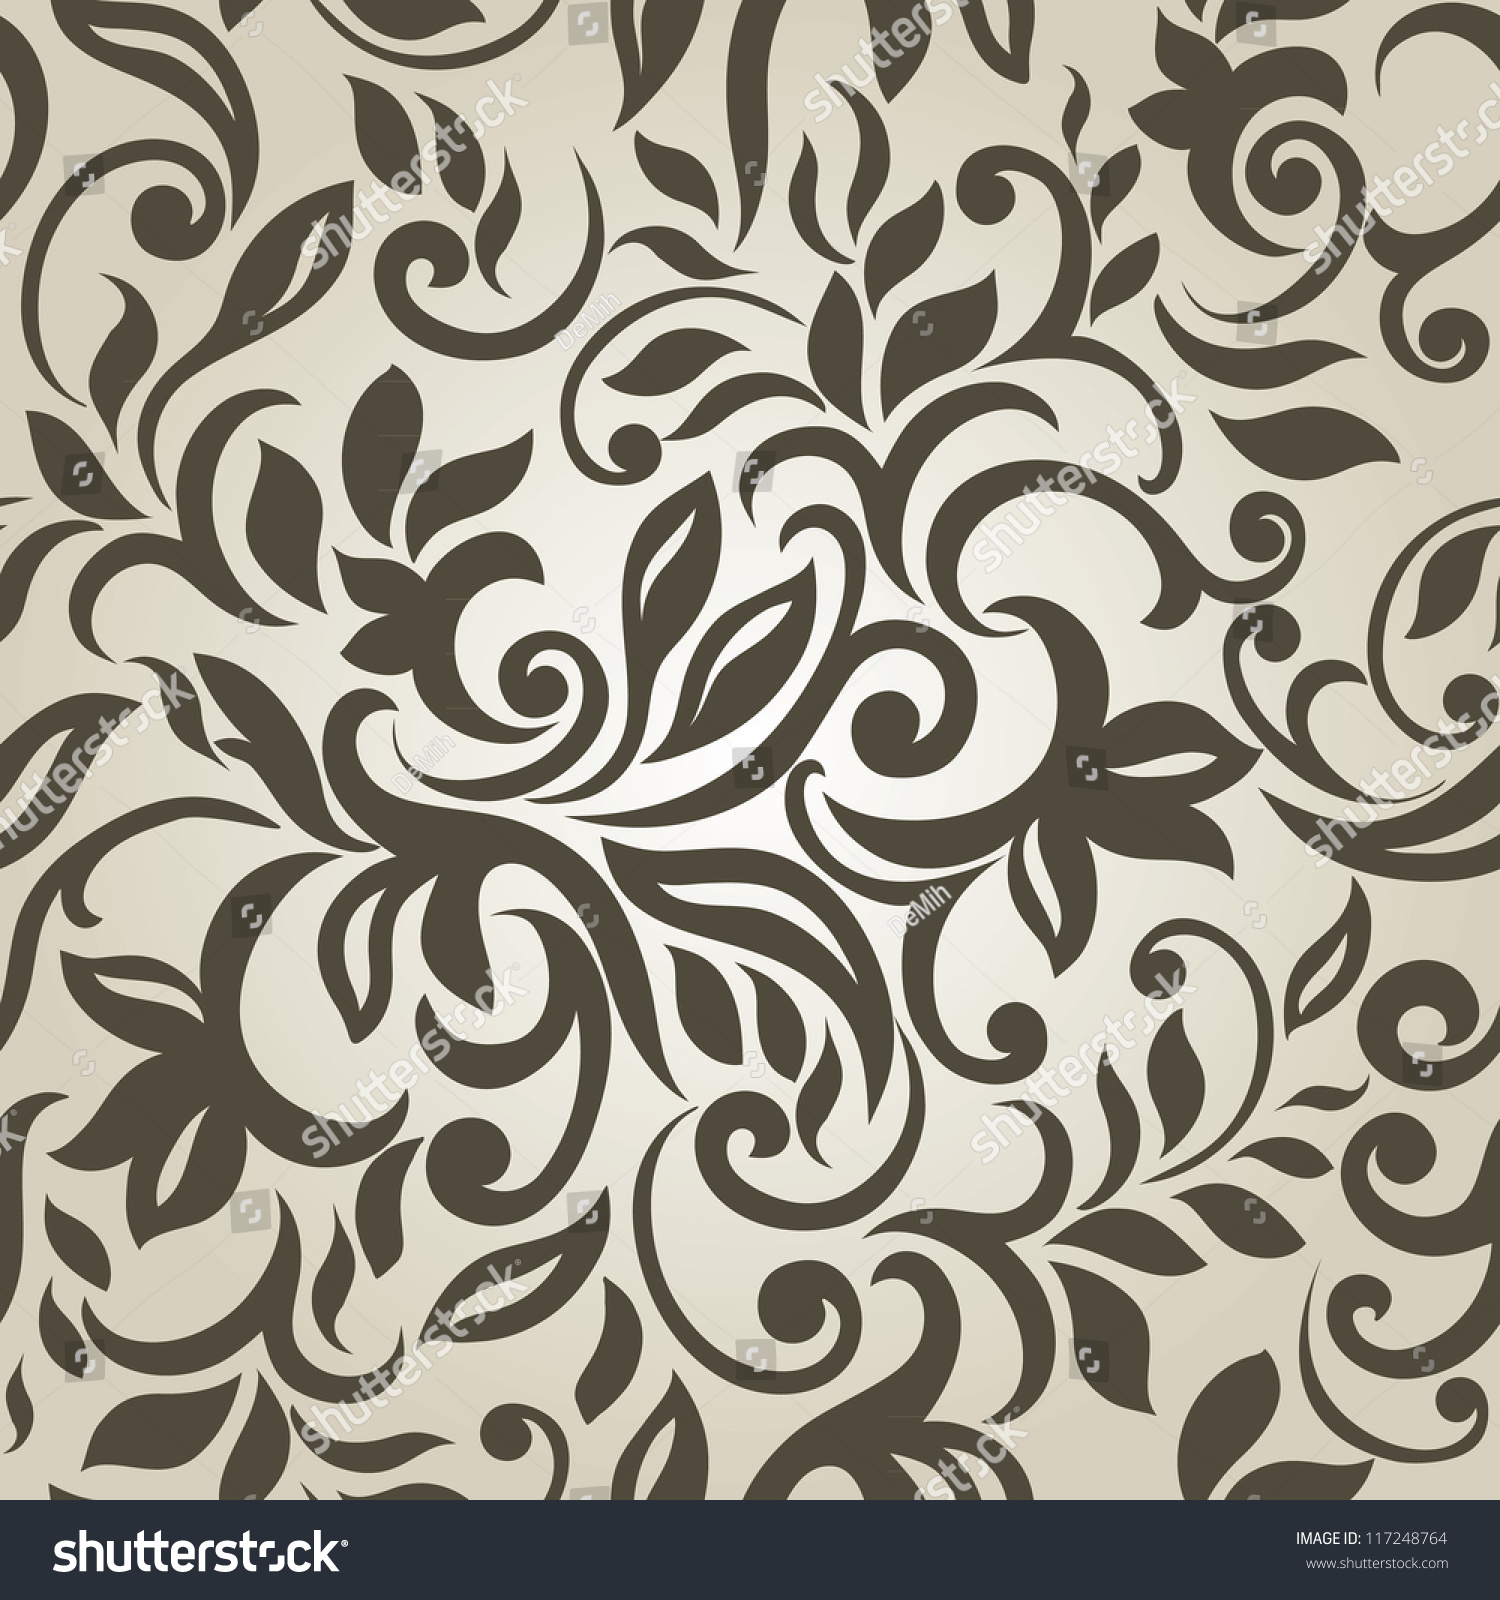 Stylish Modern Abstract Background Floral Seamless Stock Vector ...